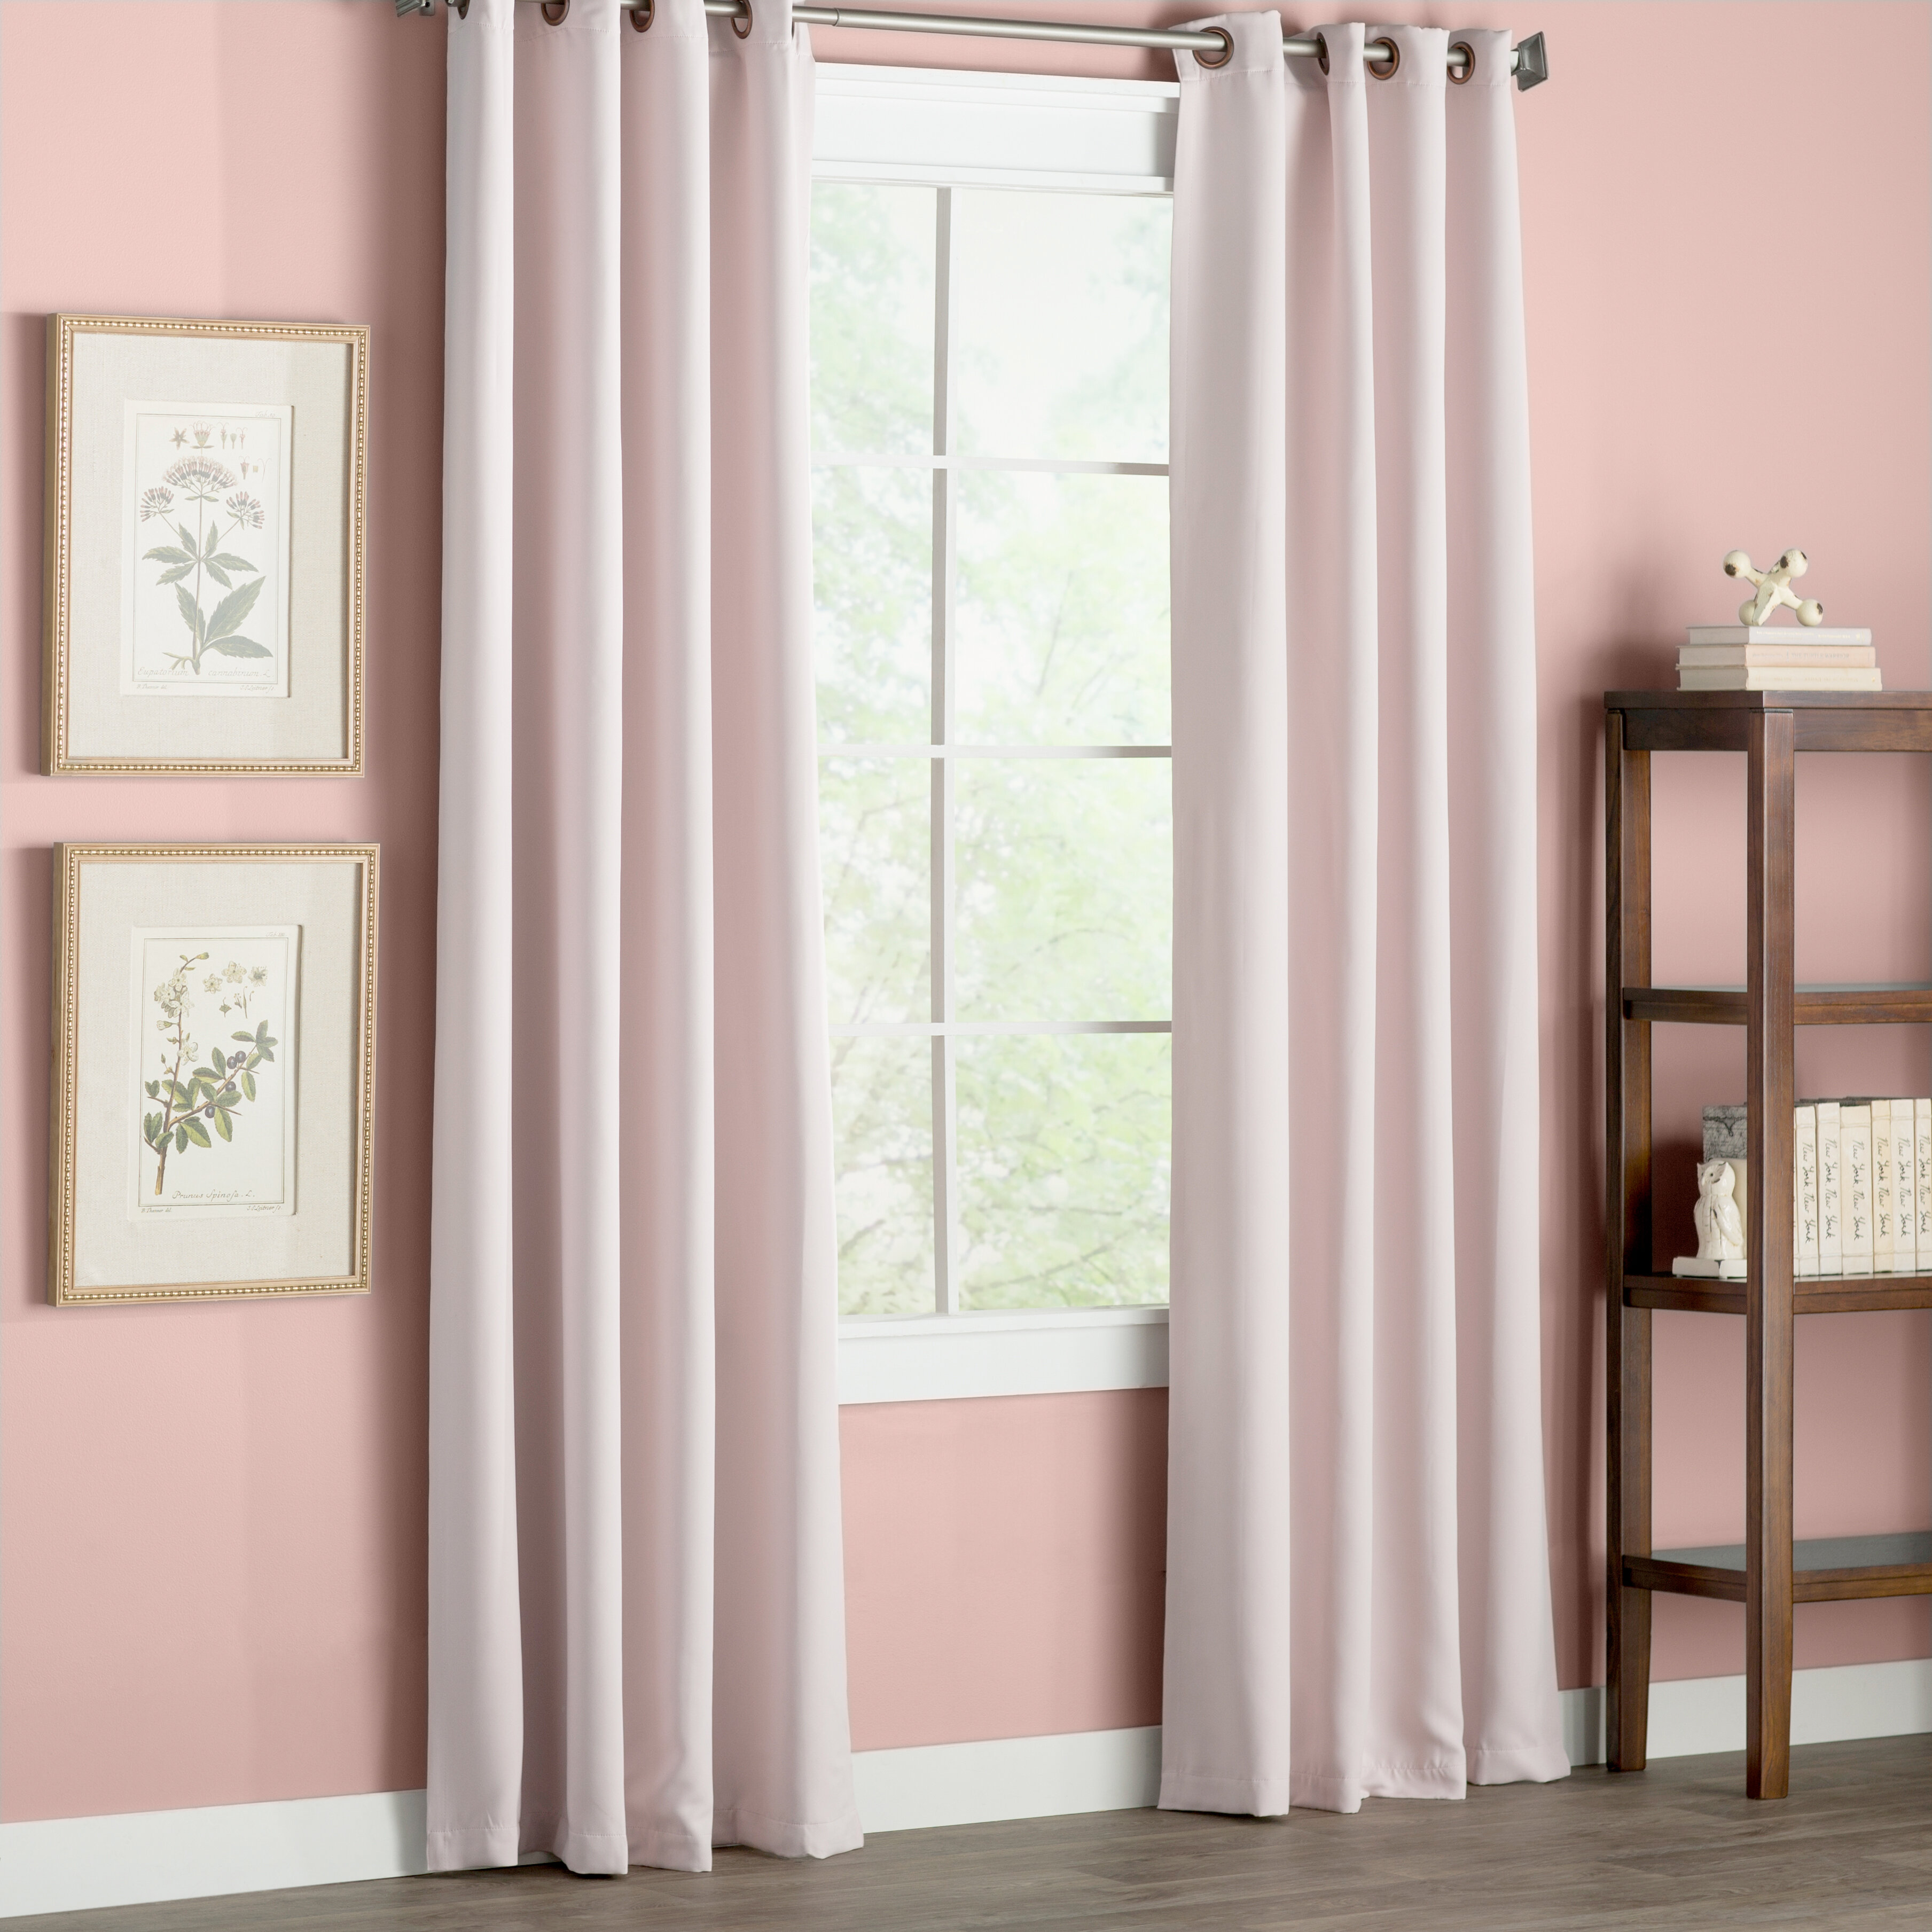 single reviews fashion rod prestige heat curtains window solid panel resistant wayfair curtain pdx blackout home pocket thermal treatments